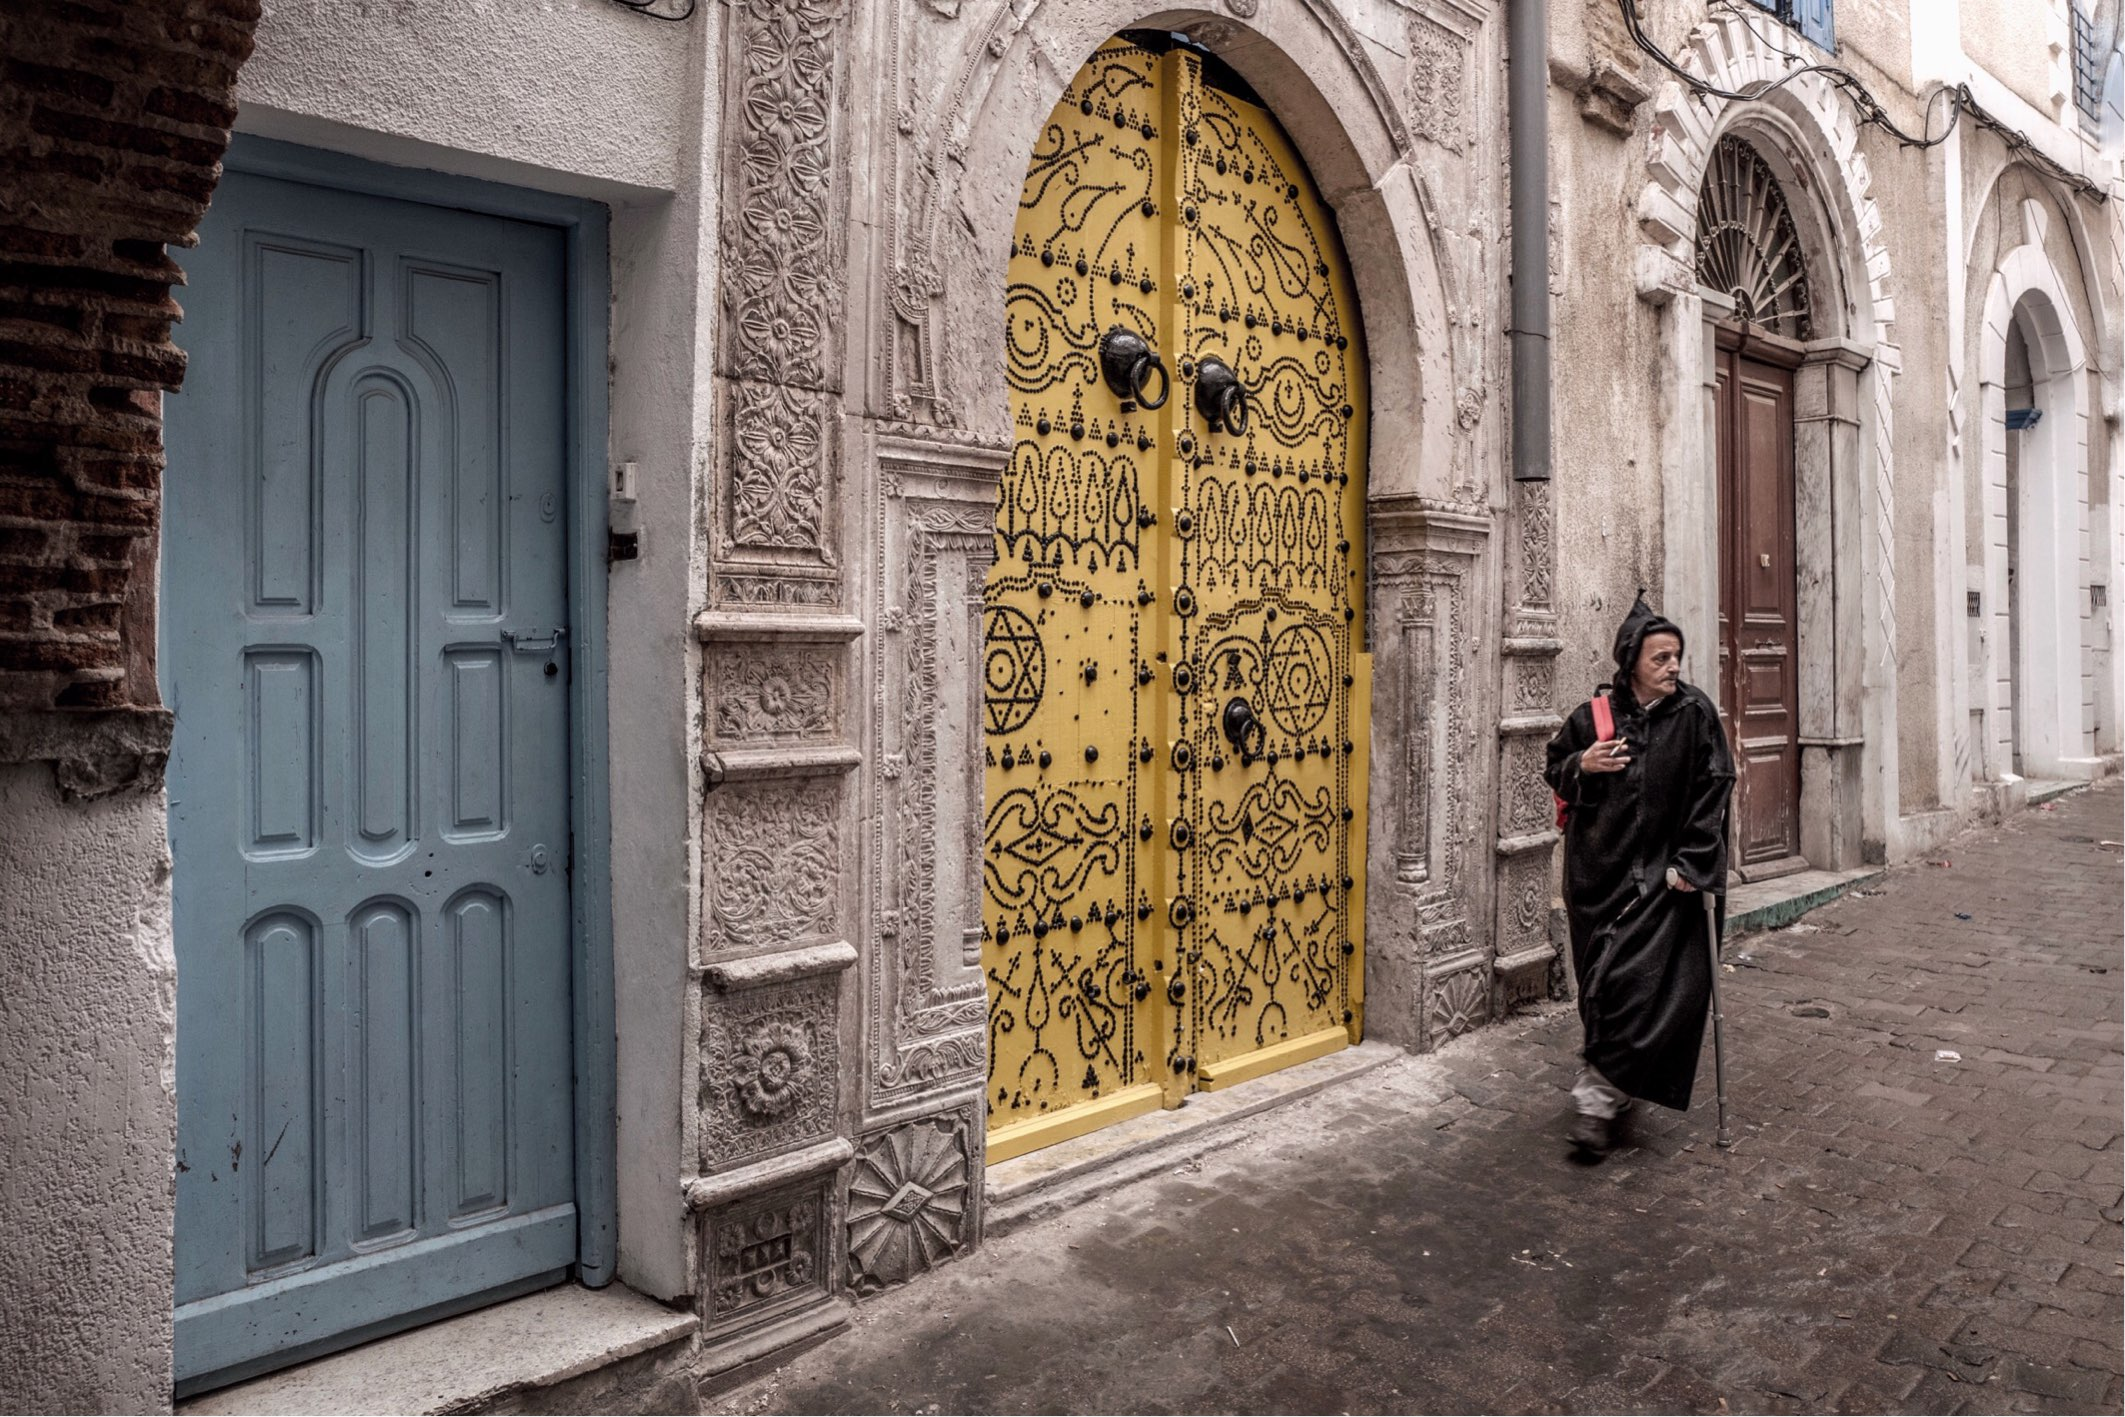 There are many of these impressive decorative doors throughout the Medina.